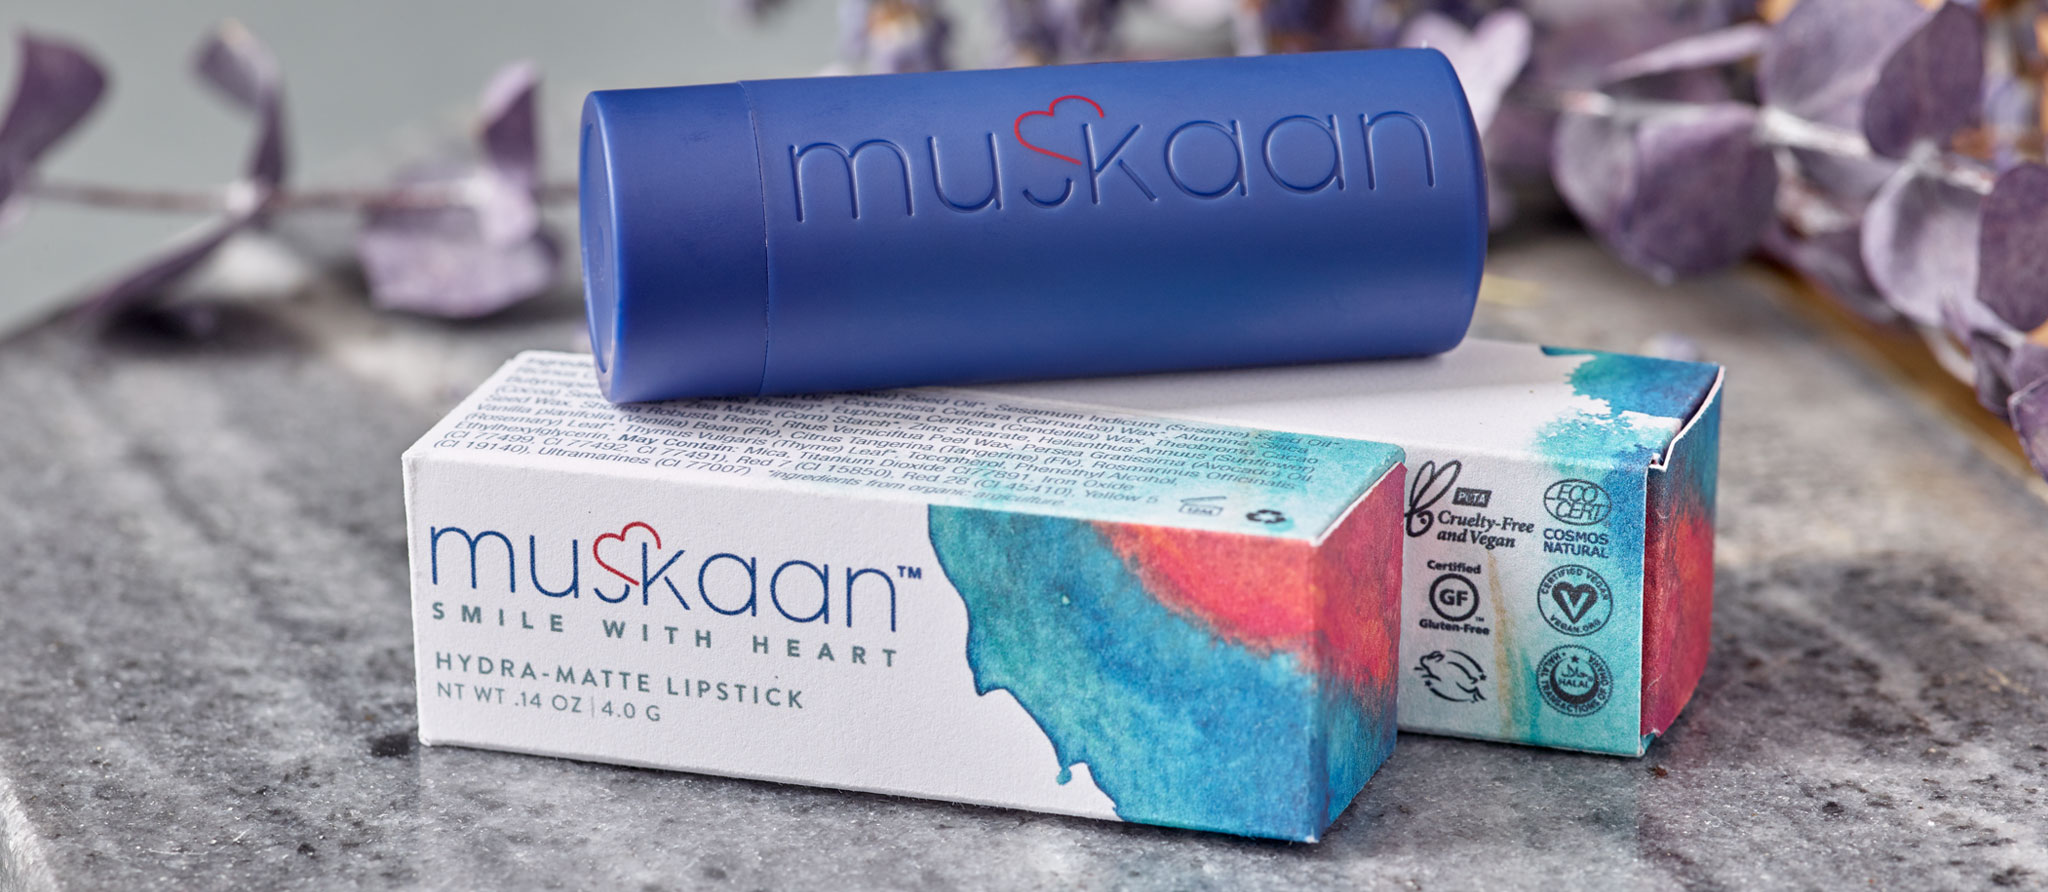 Muskaan lipstick tube and product packaging photography